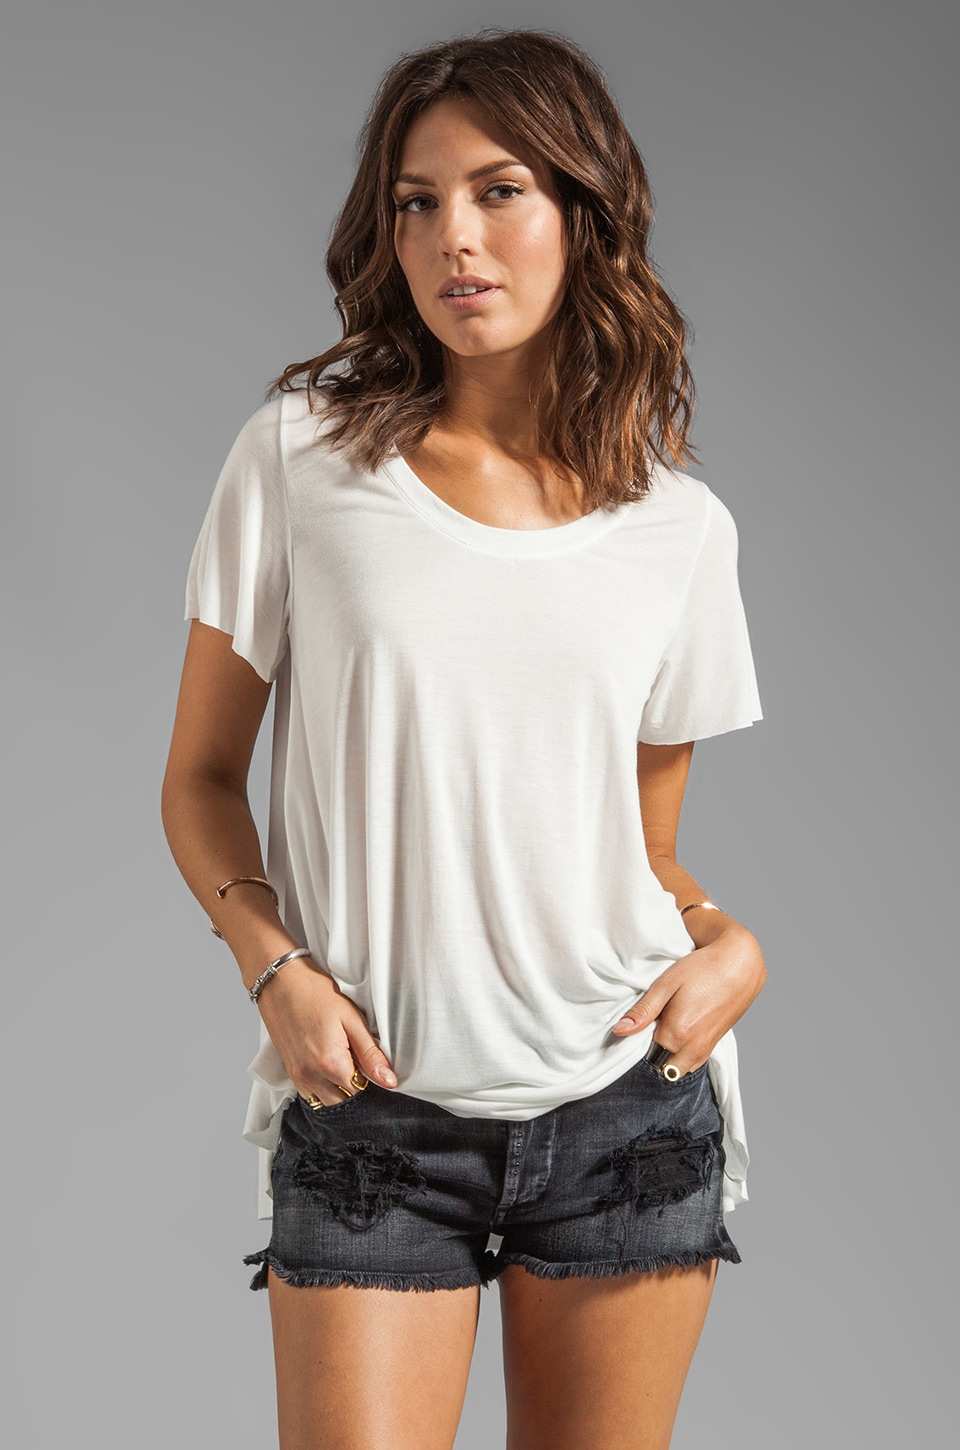 Pencey Standard Peasant Tee in White